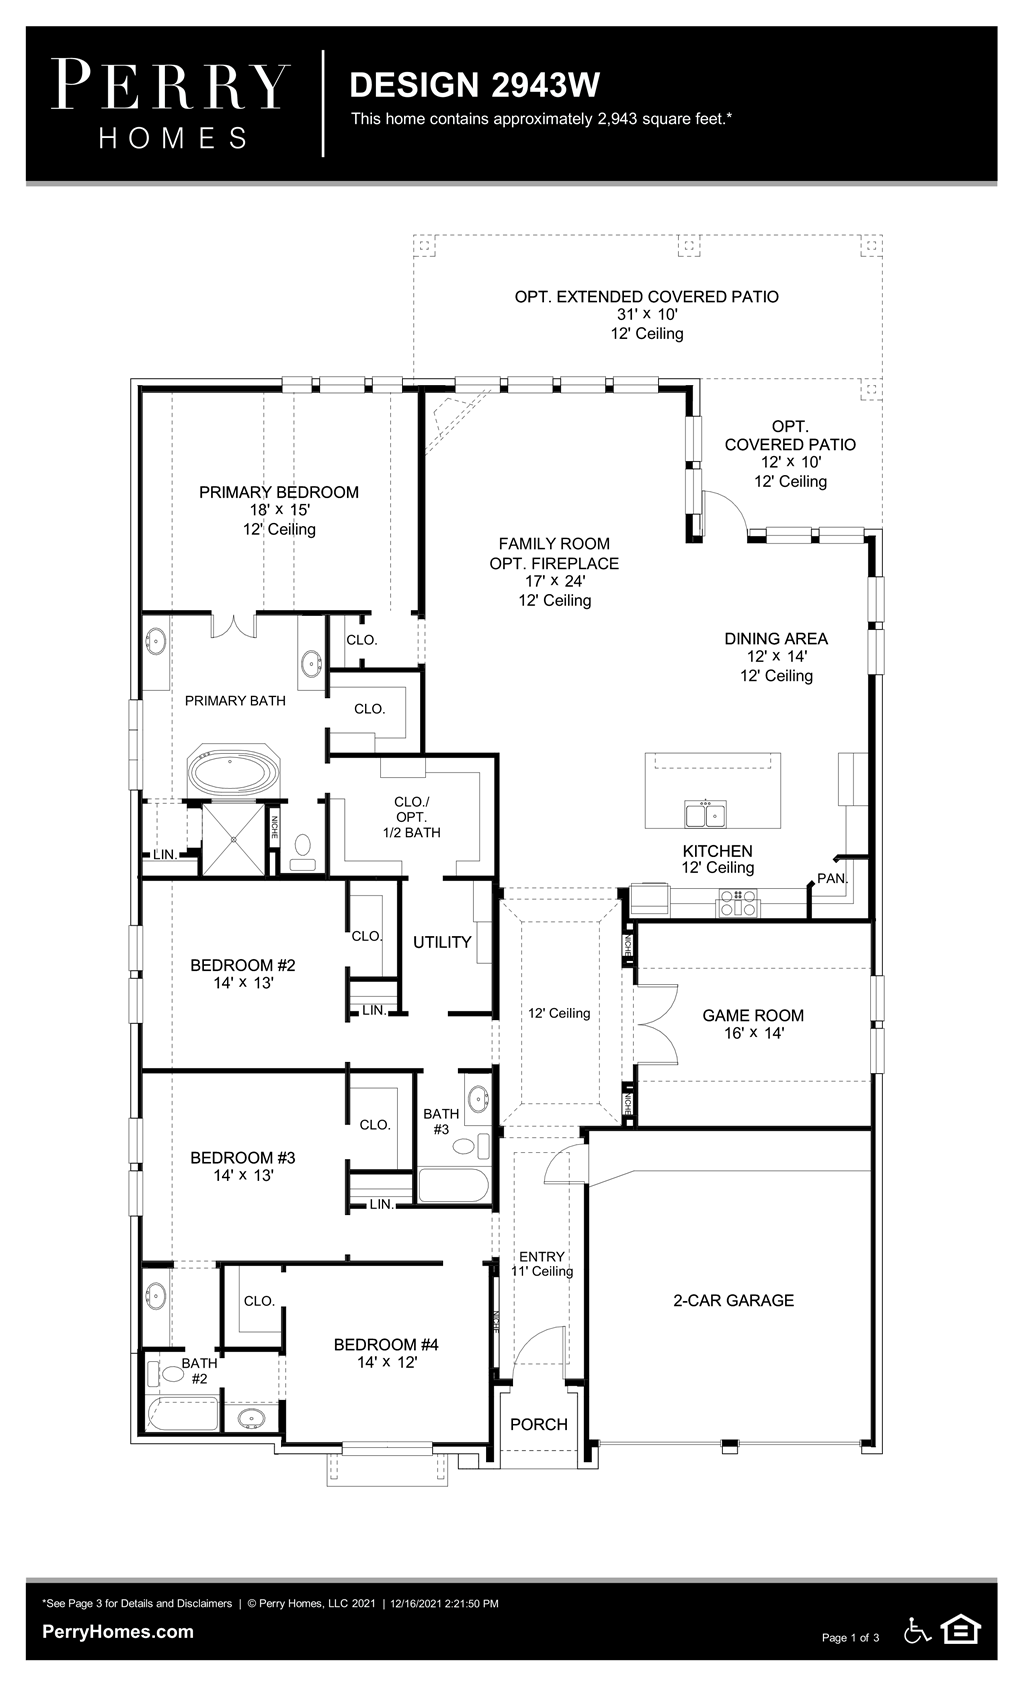 Floor Plan for 2943W